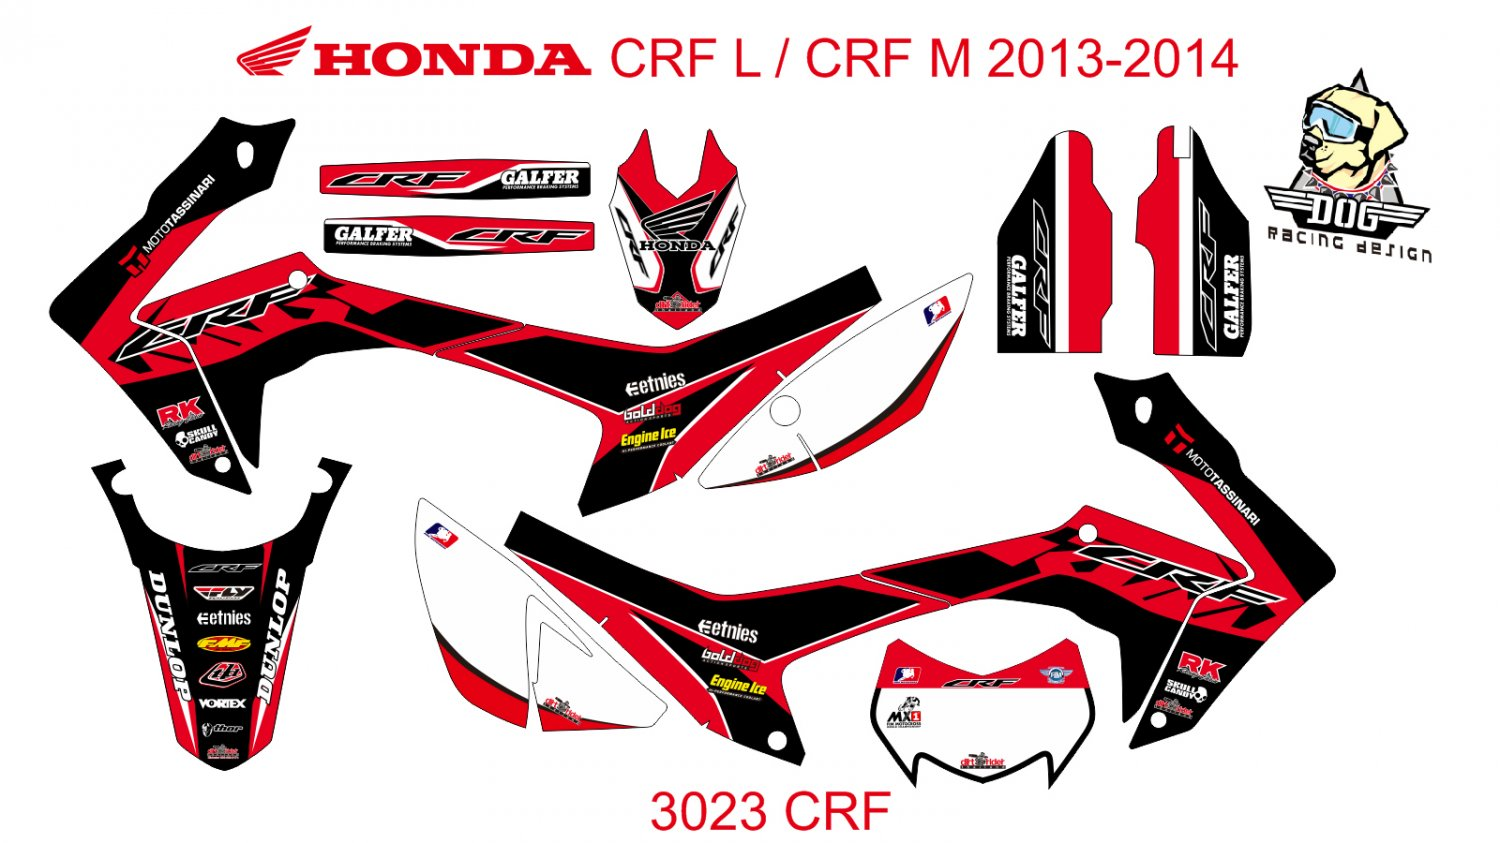 HONDA CRF L CRF M 2013-2014 GRAPHIC DECAL KIT CODE.3023